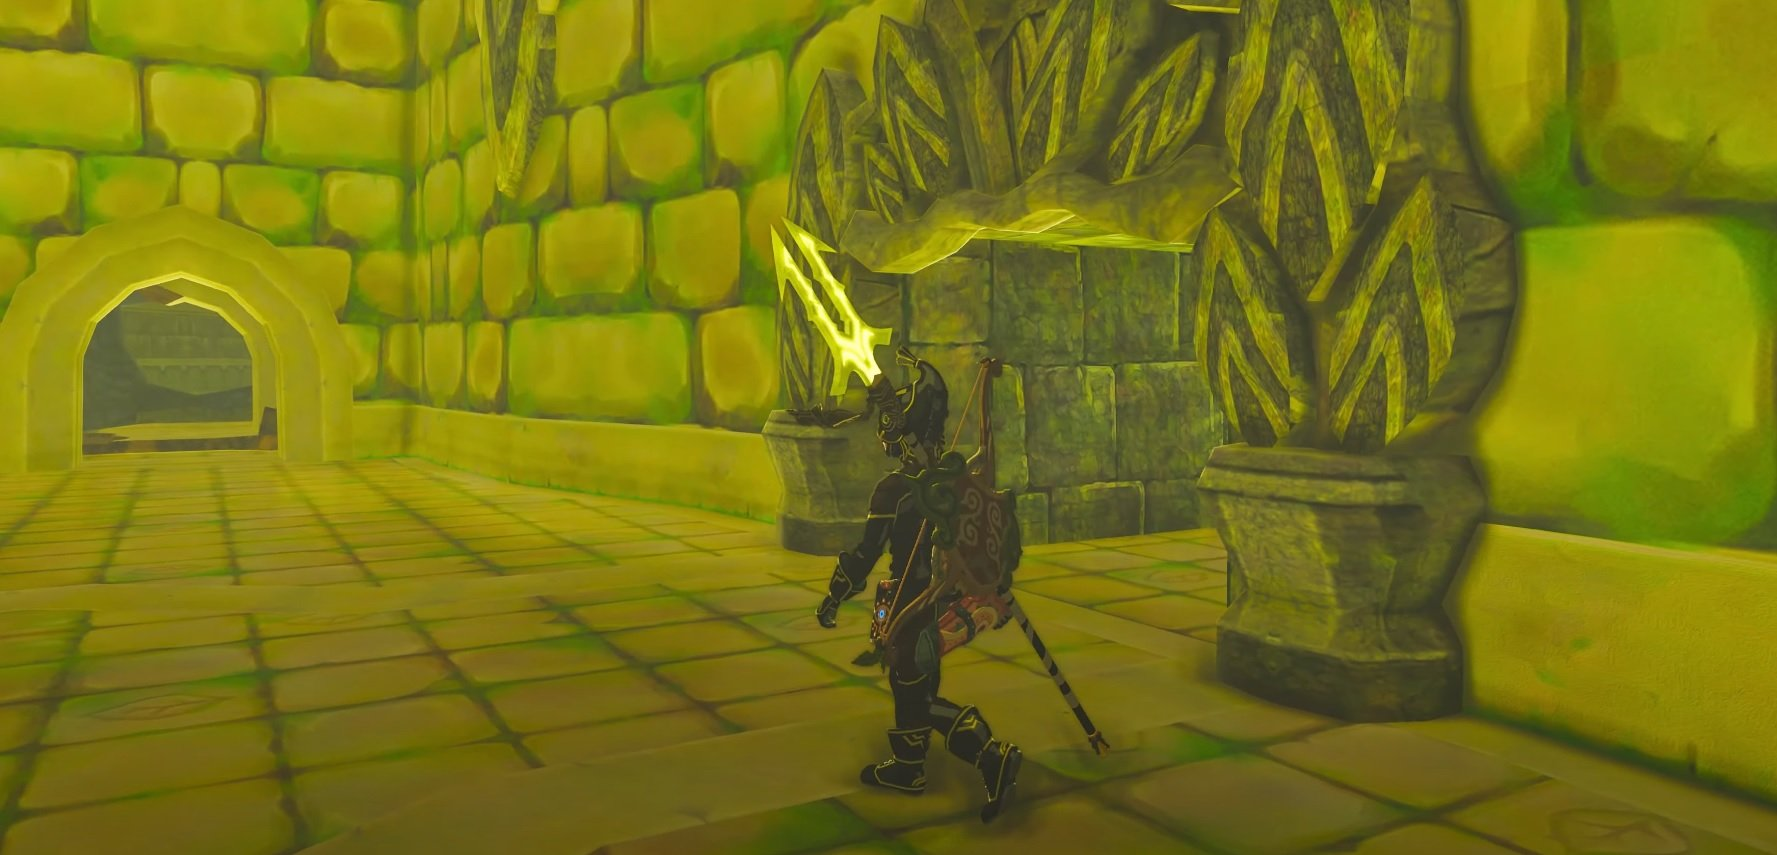 This modder created a 'fully functional custom dungeon' for Zelda: Breath of the Wild screenshot